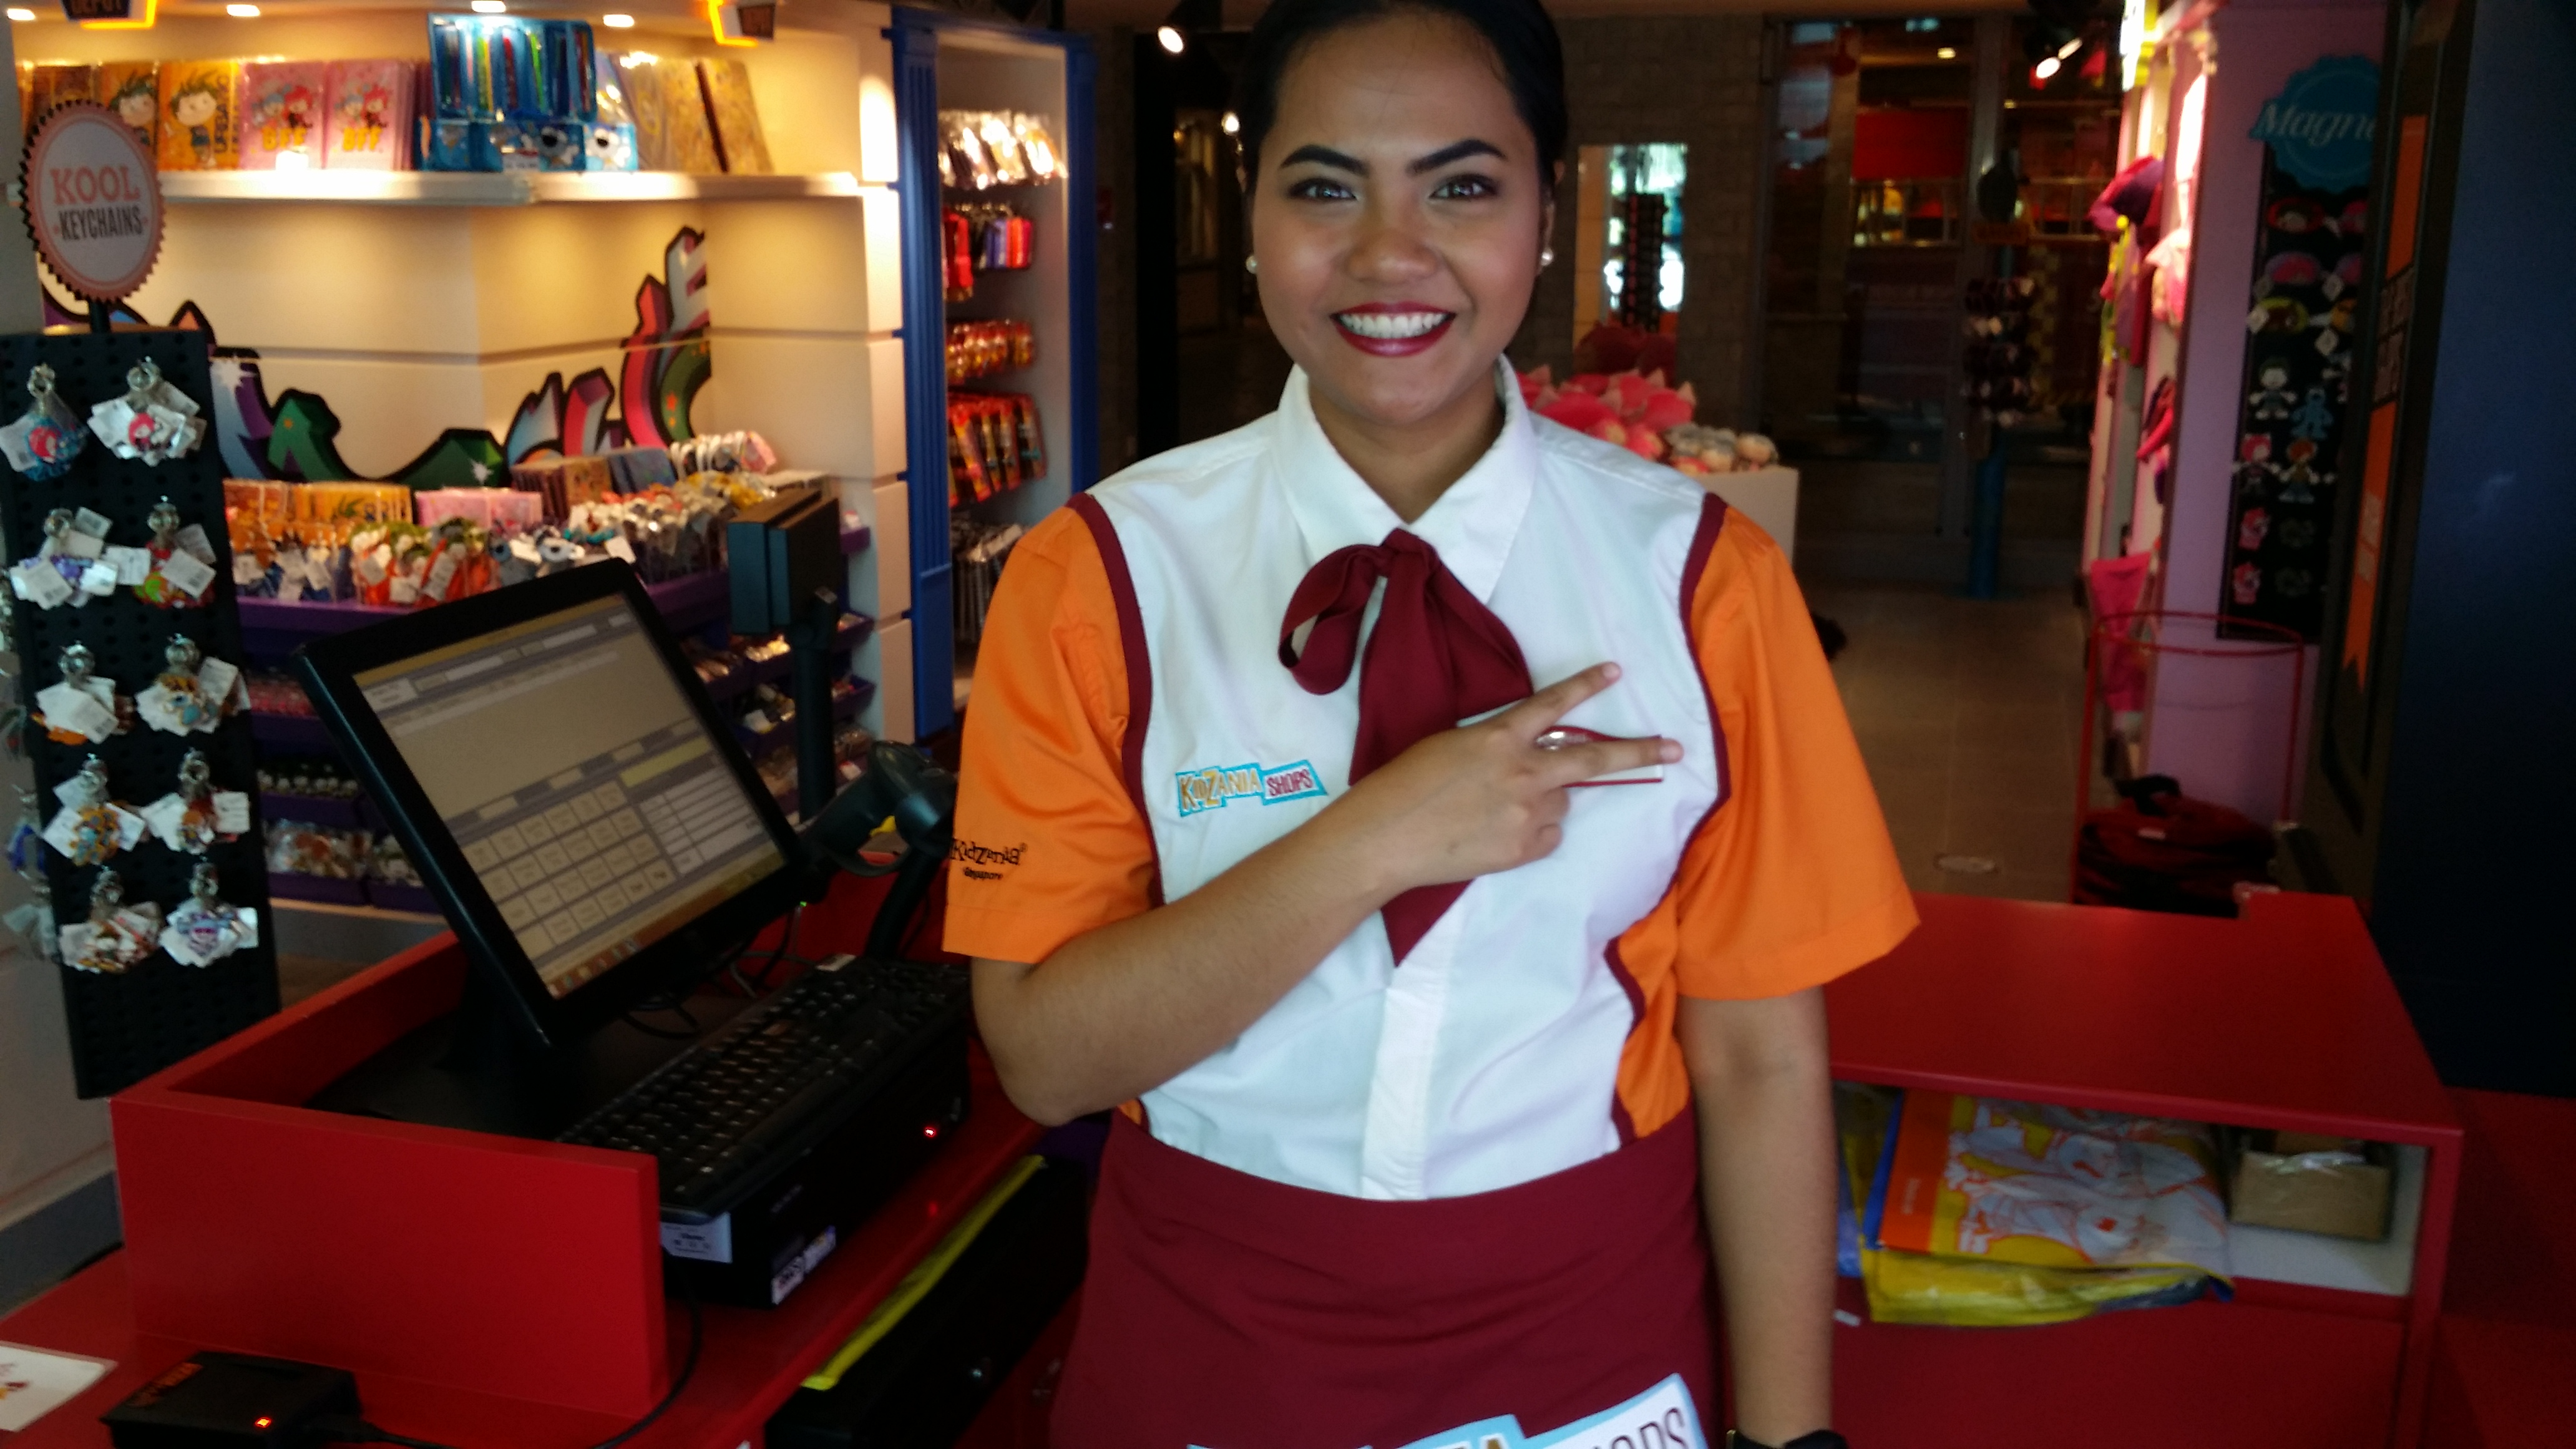 Rrpl Selects Aralco Retail Pos Systems For Its Leisure